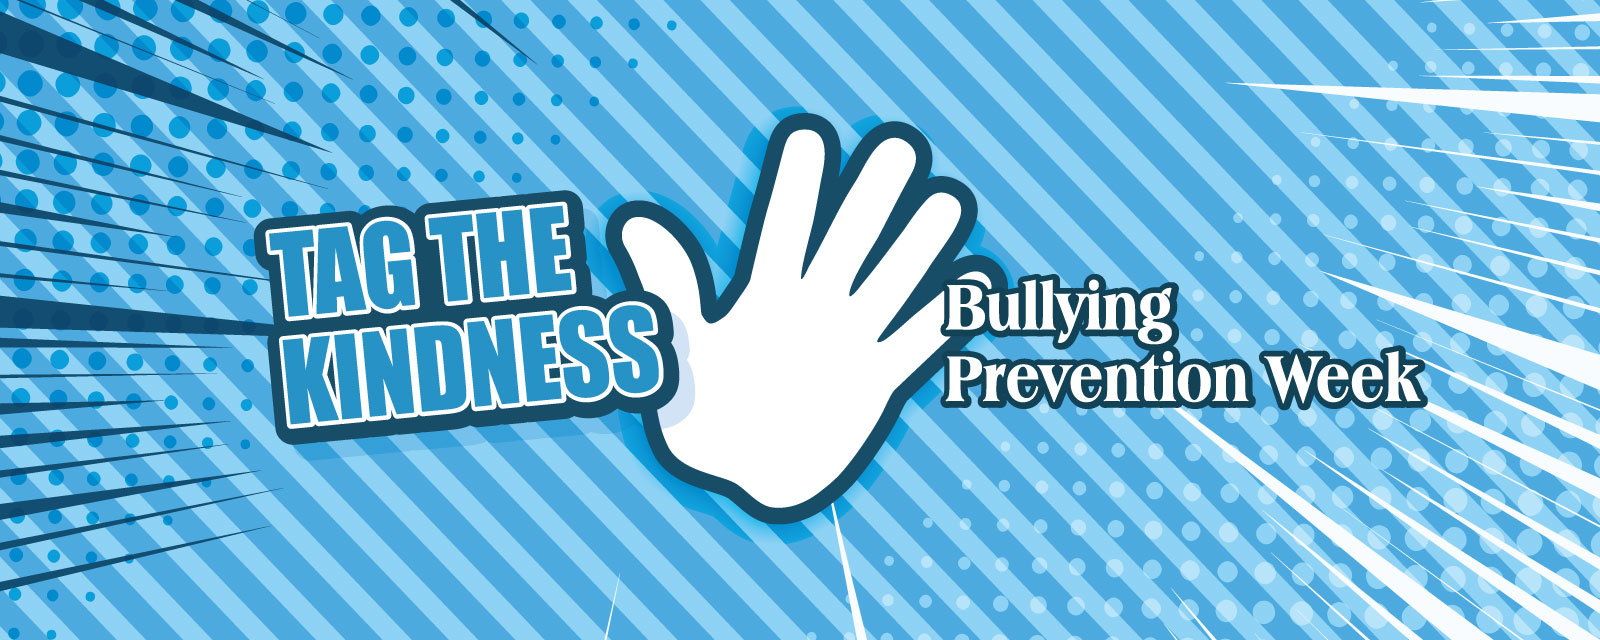 Tag the Kindness - Bullying Prevention Week